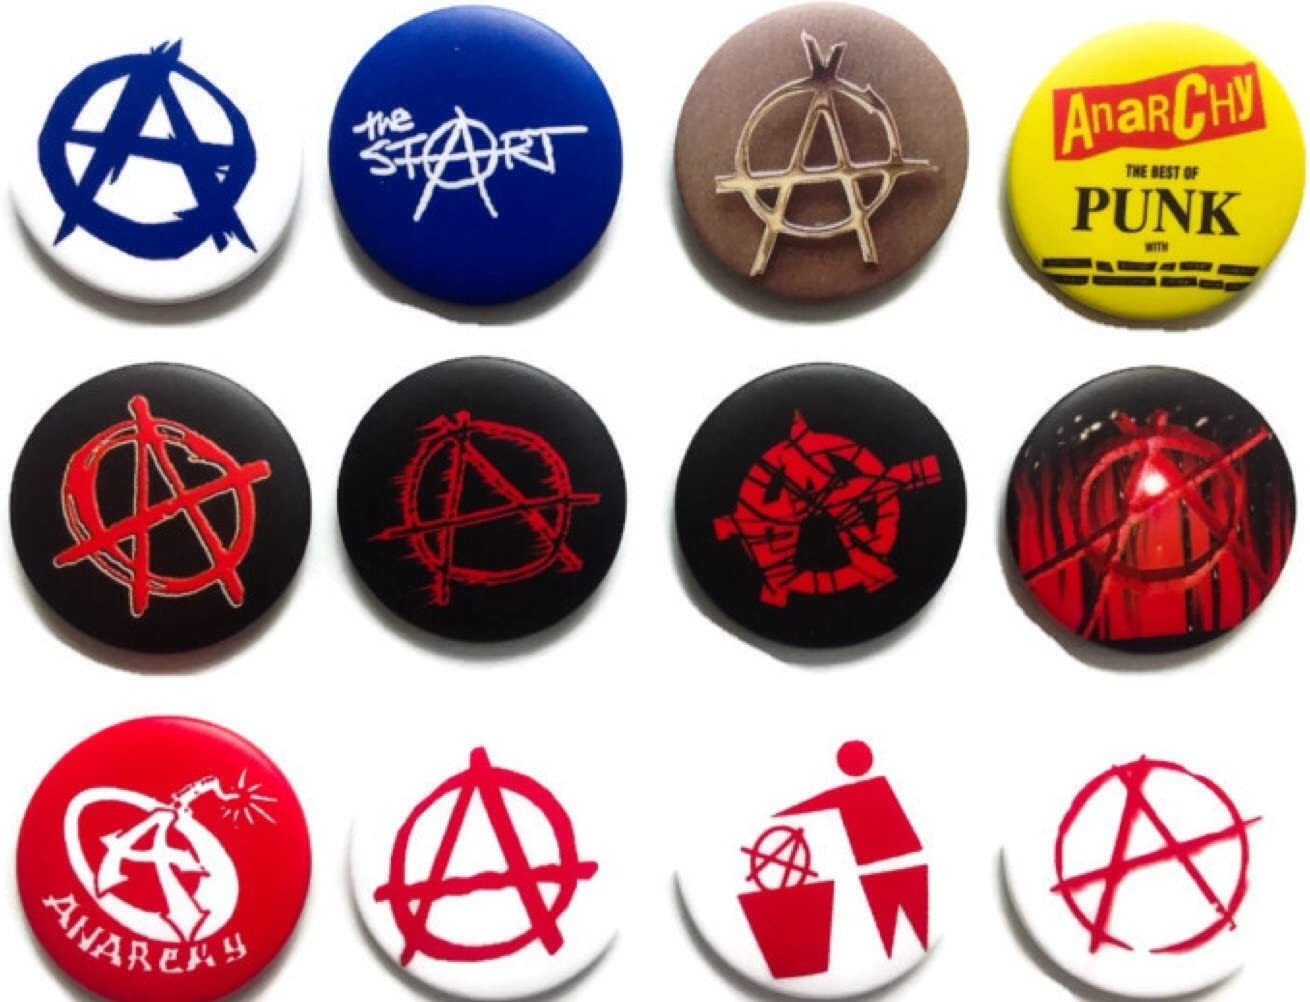 ANARCHY Symbol 4 fan Awesome Quality Lot 12 New Pins Pinback Buttons Badge 1.25